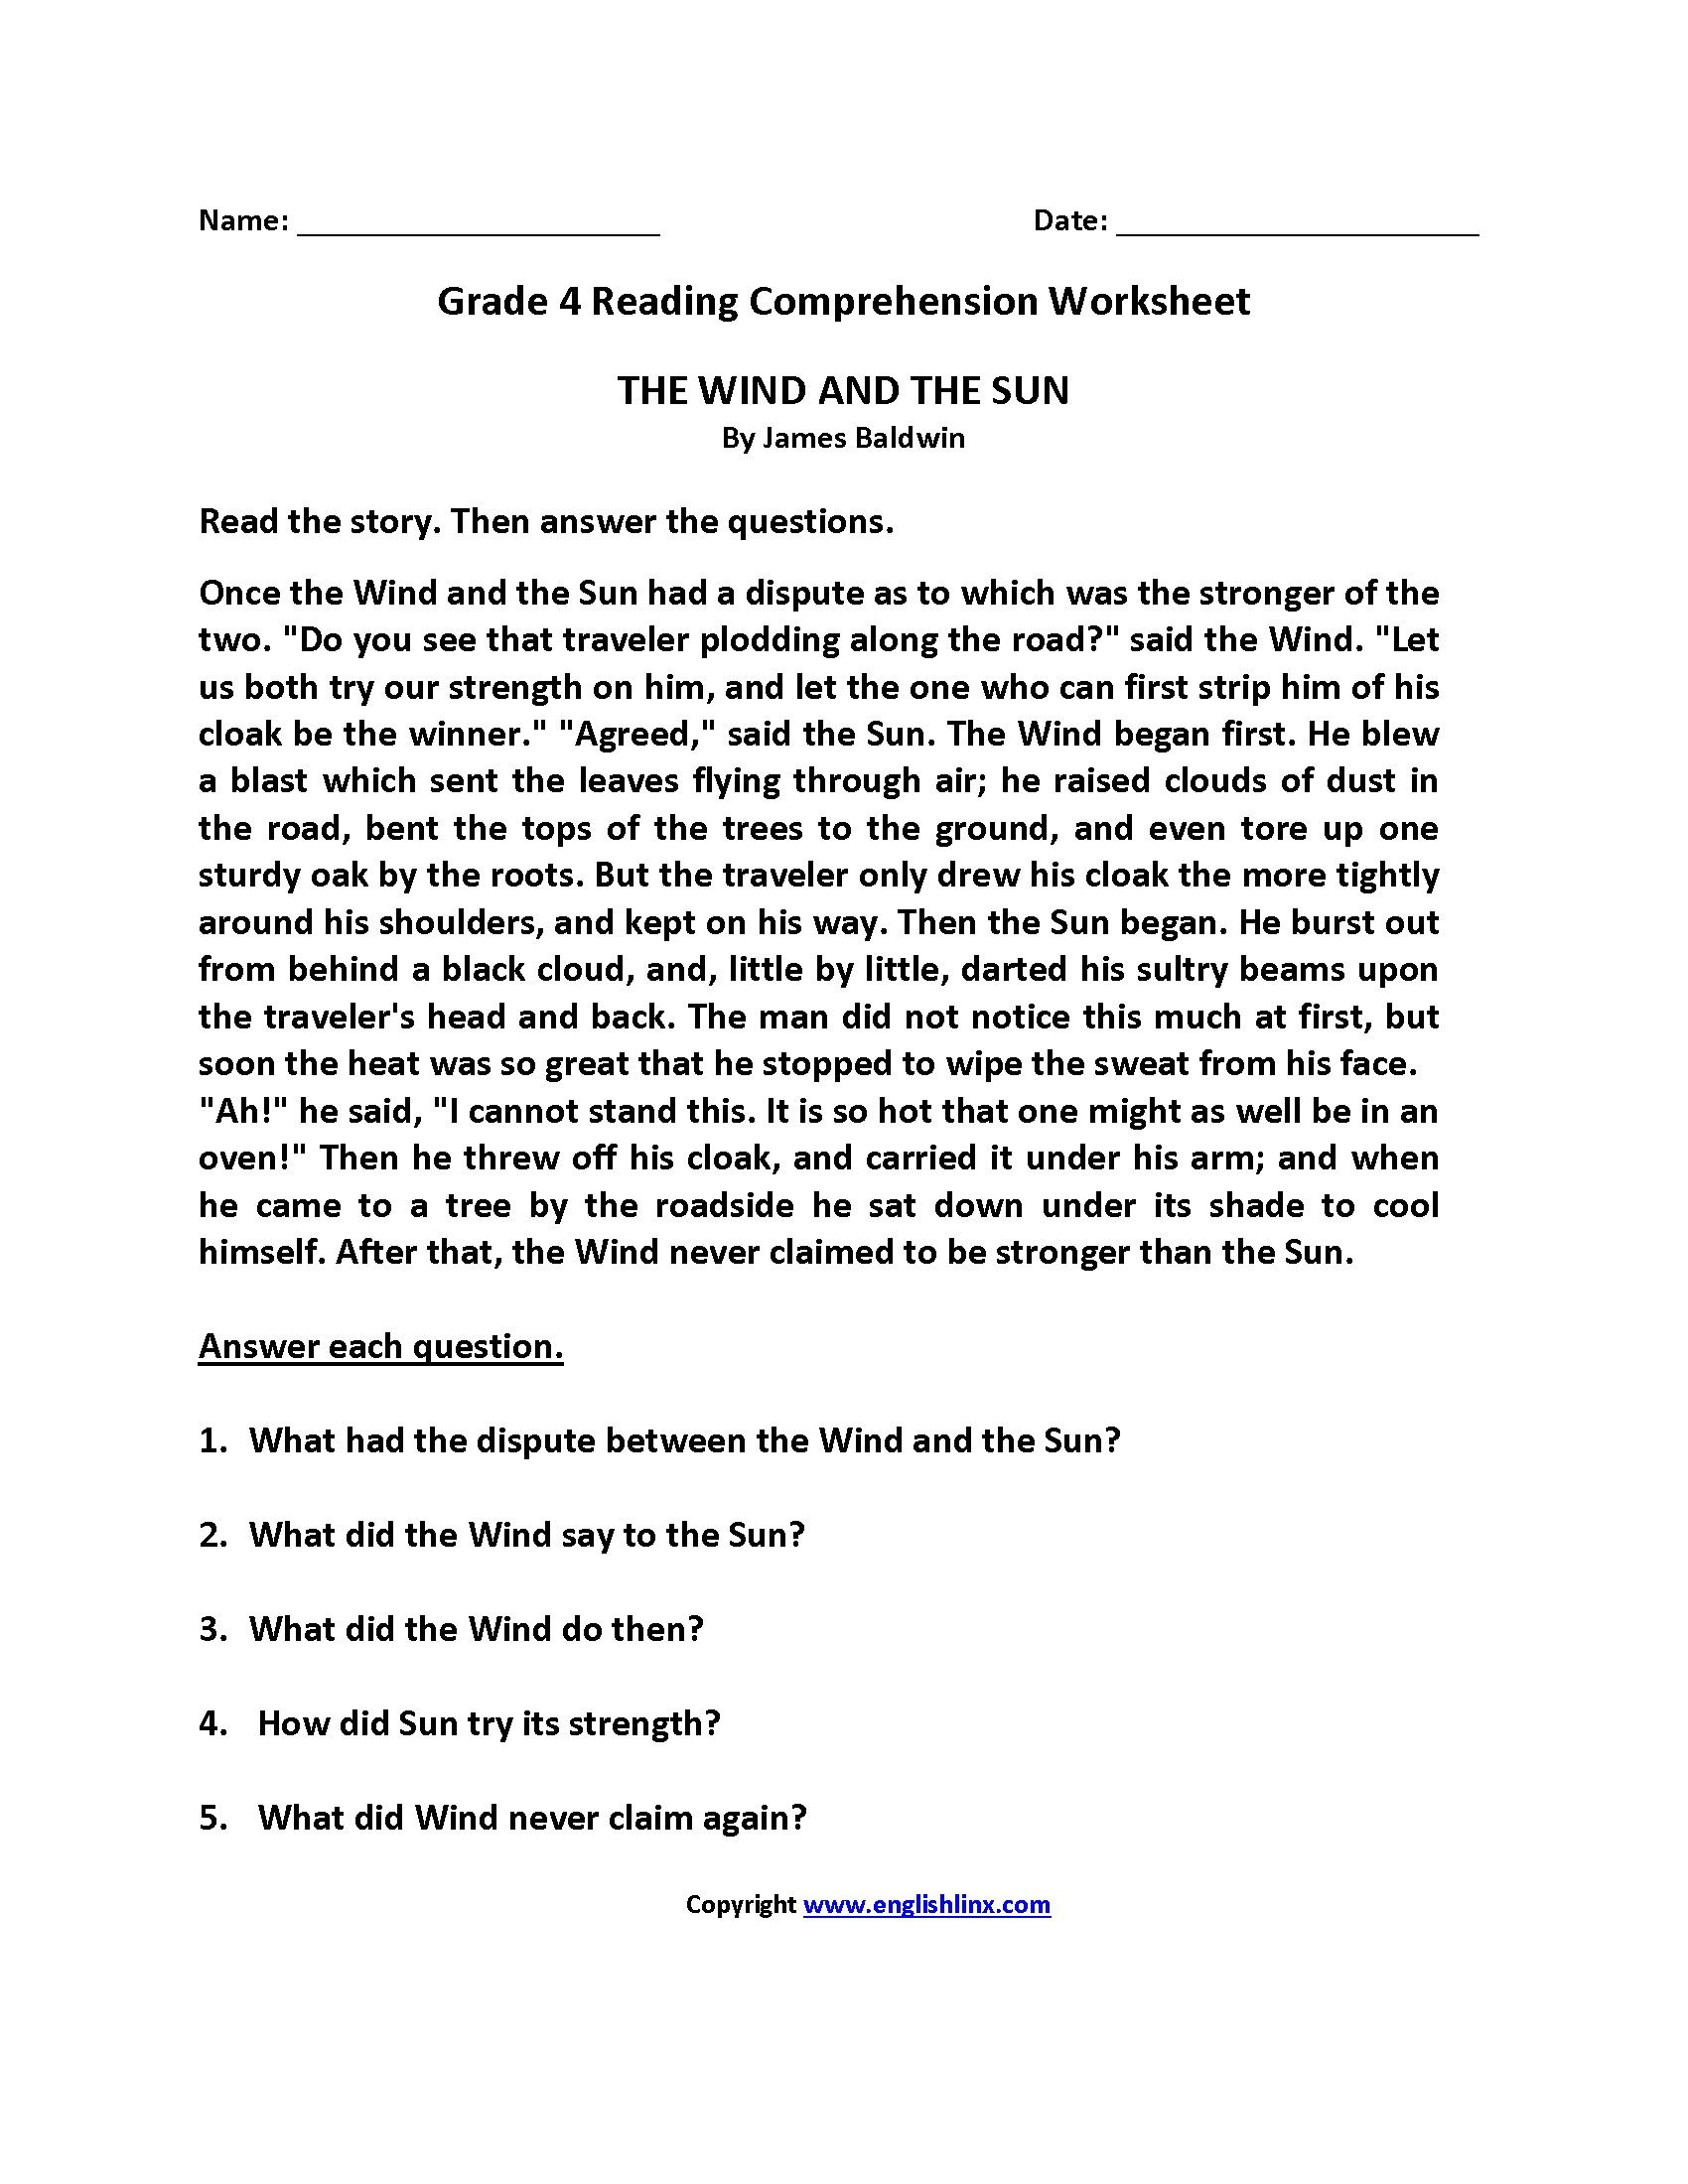 Prehension Worksheet Grade 4